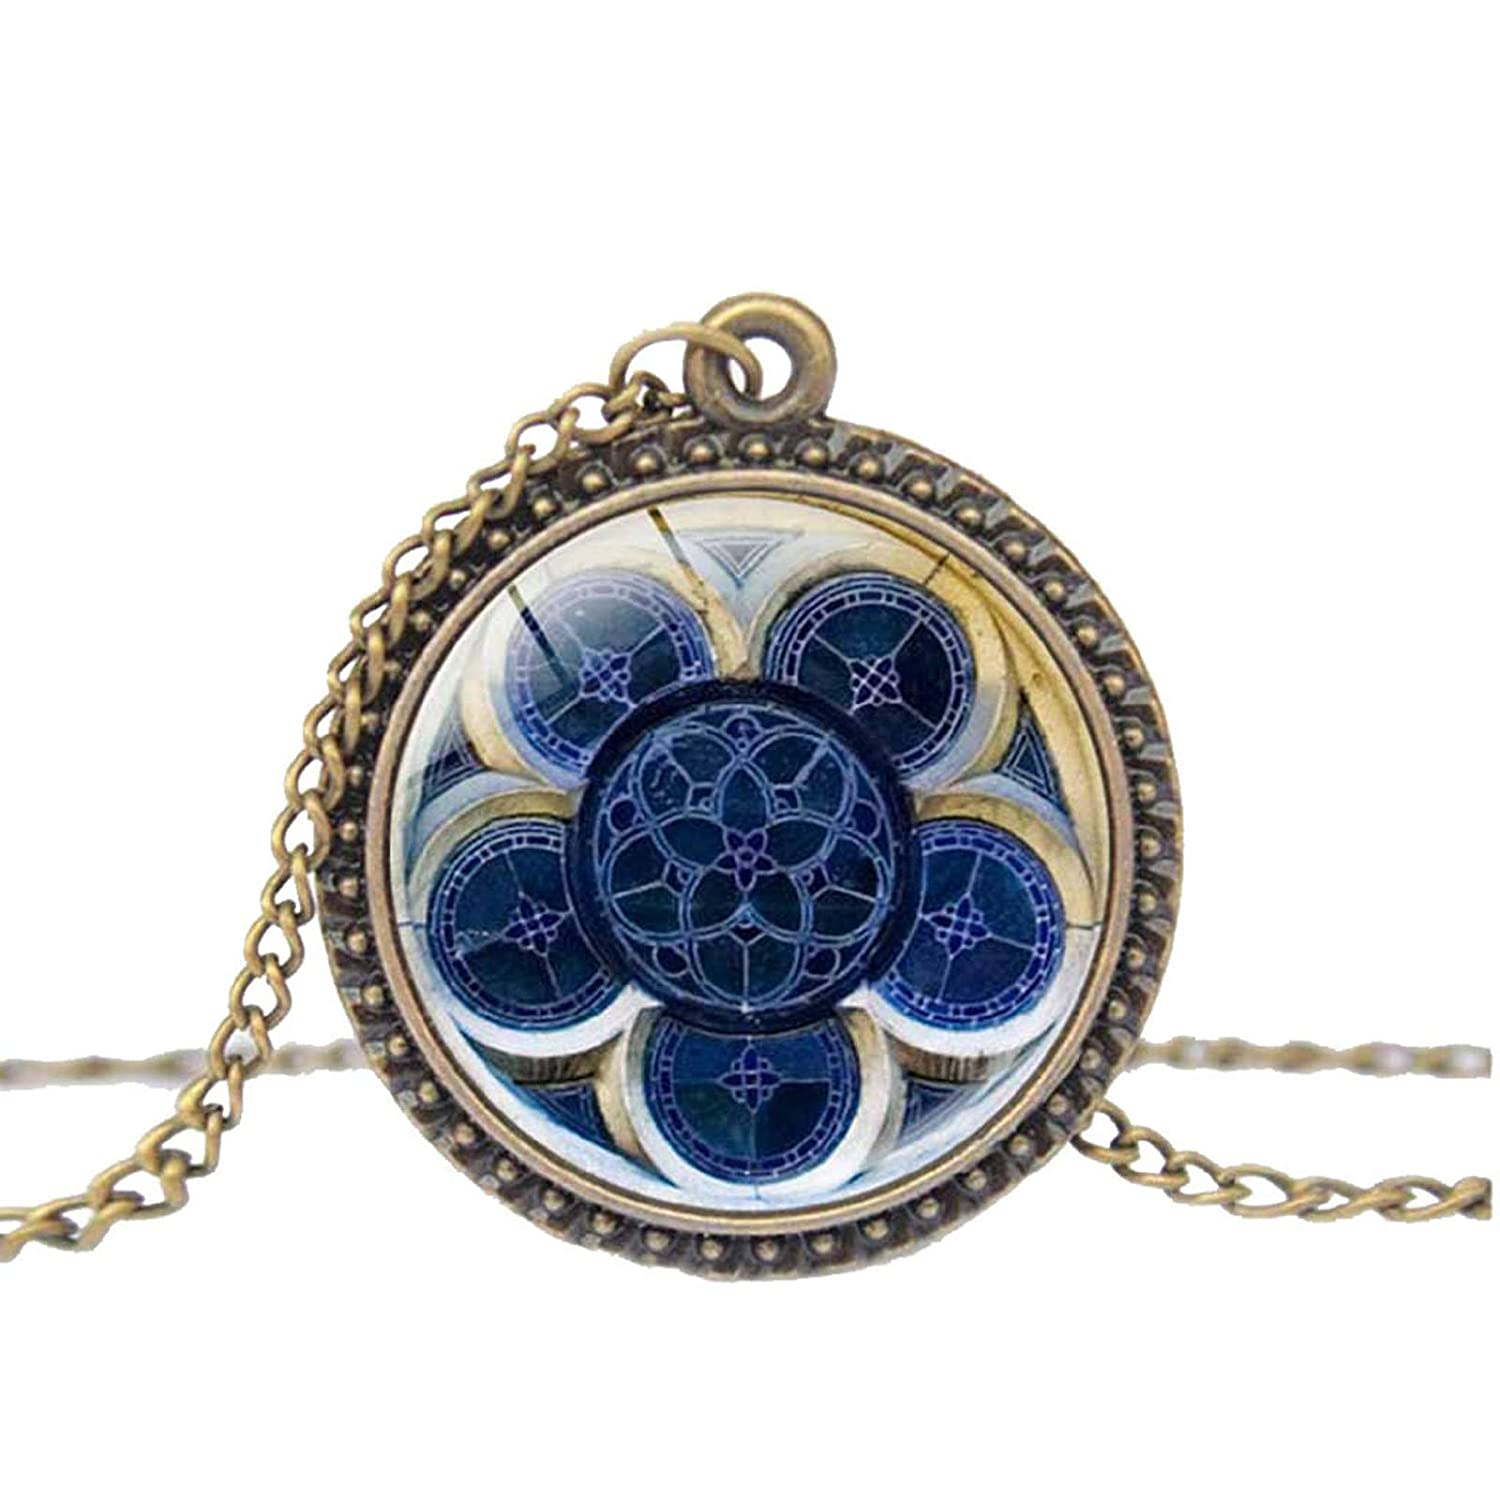 Amazon.com: Dmitongz Women Pendant Necklace Paris Cathedral Commemorate Choker Necklaces Rose Window Cufflinks Catholic Christian Necklaces: Jewelry